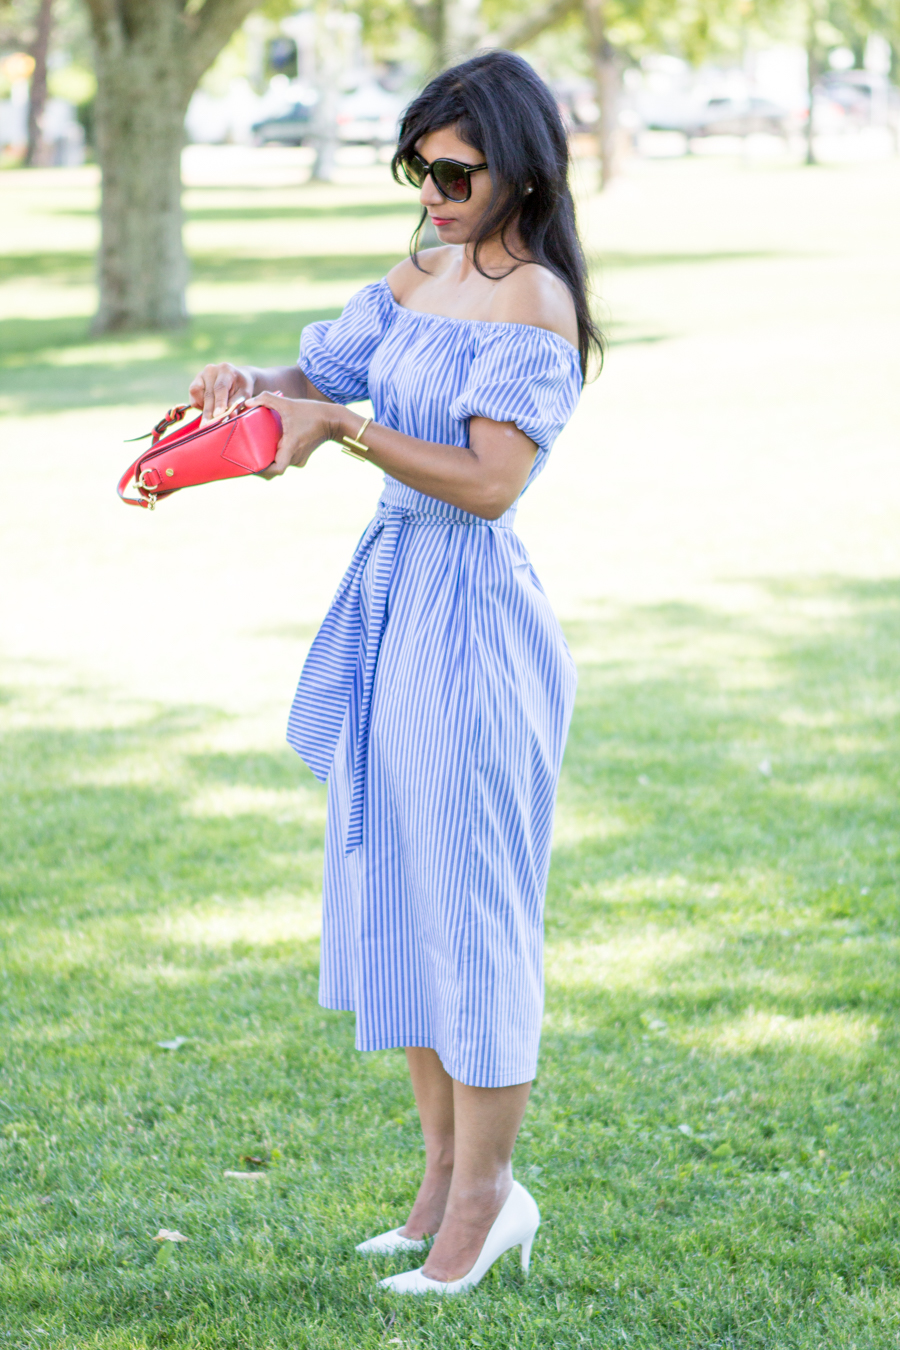 july 4, independence day, 4th of july style, holiday style, white and blue stripes, red, white and blue, white pumps, zara, petite fashion, red lipstick, perfect summer dress, off-the-shoulder, style blog,style over 40